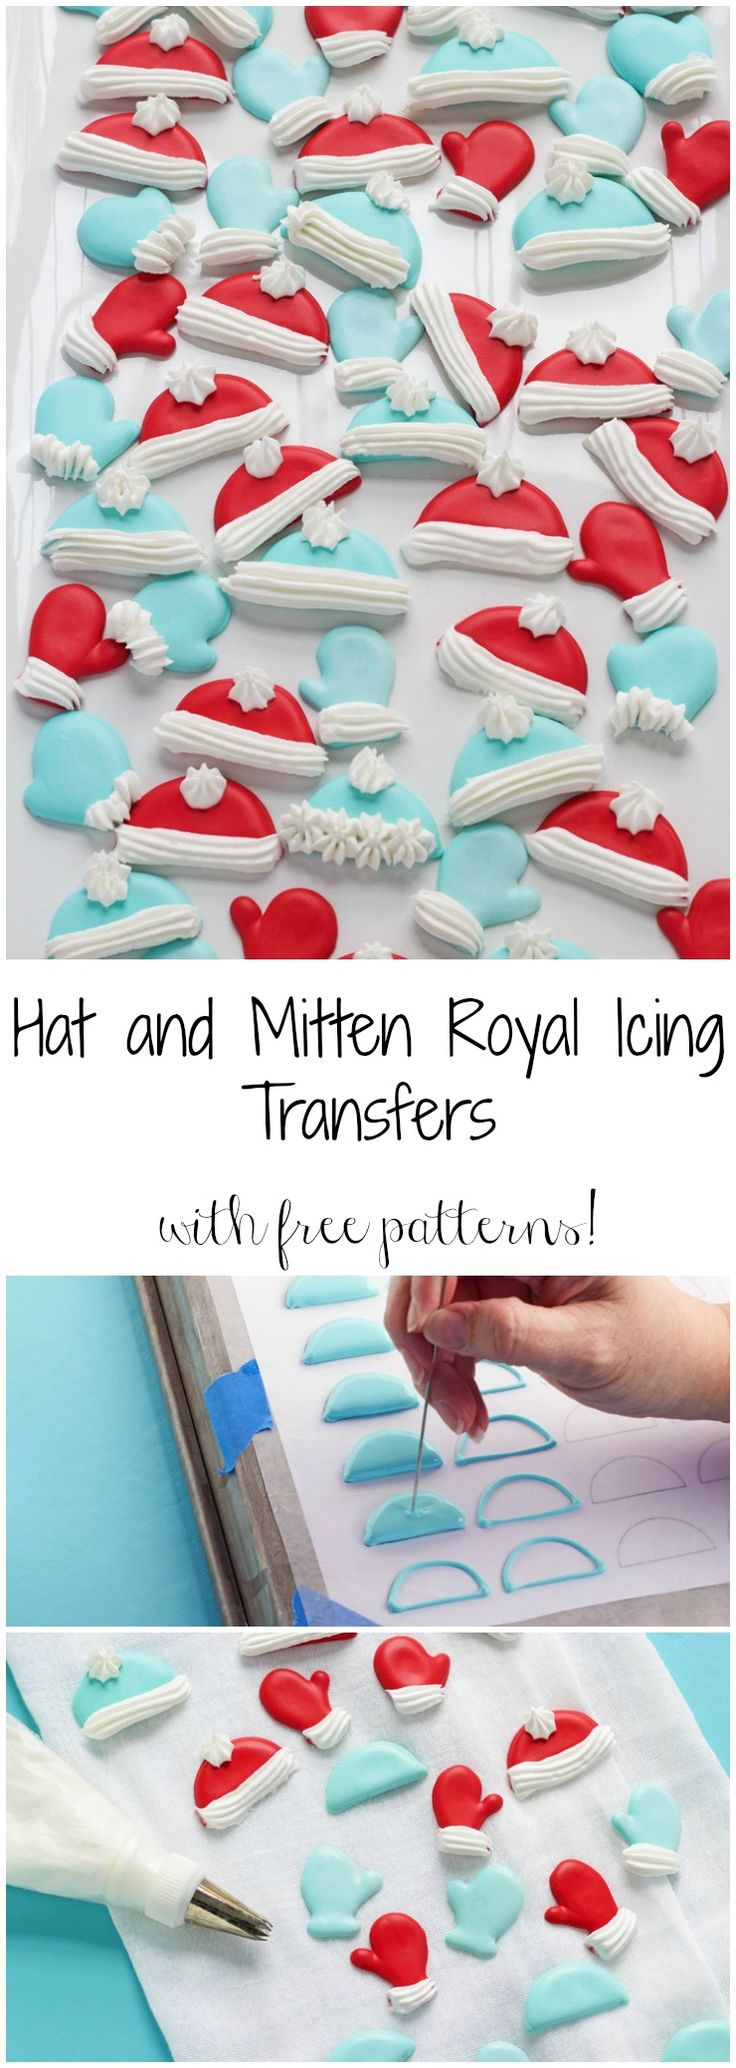 Free Printable Patterns for Hat and Mitten Royal Icing Transfers | The Bearfoot Baker